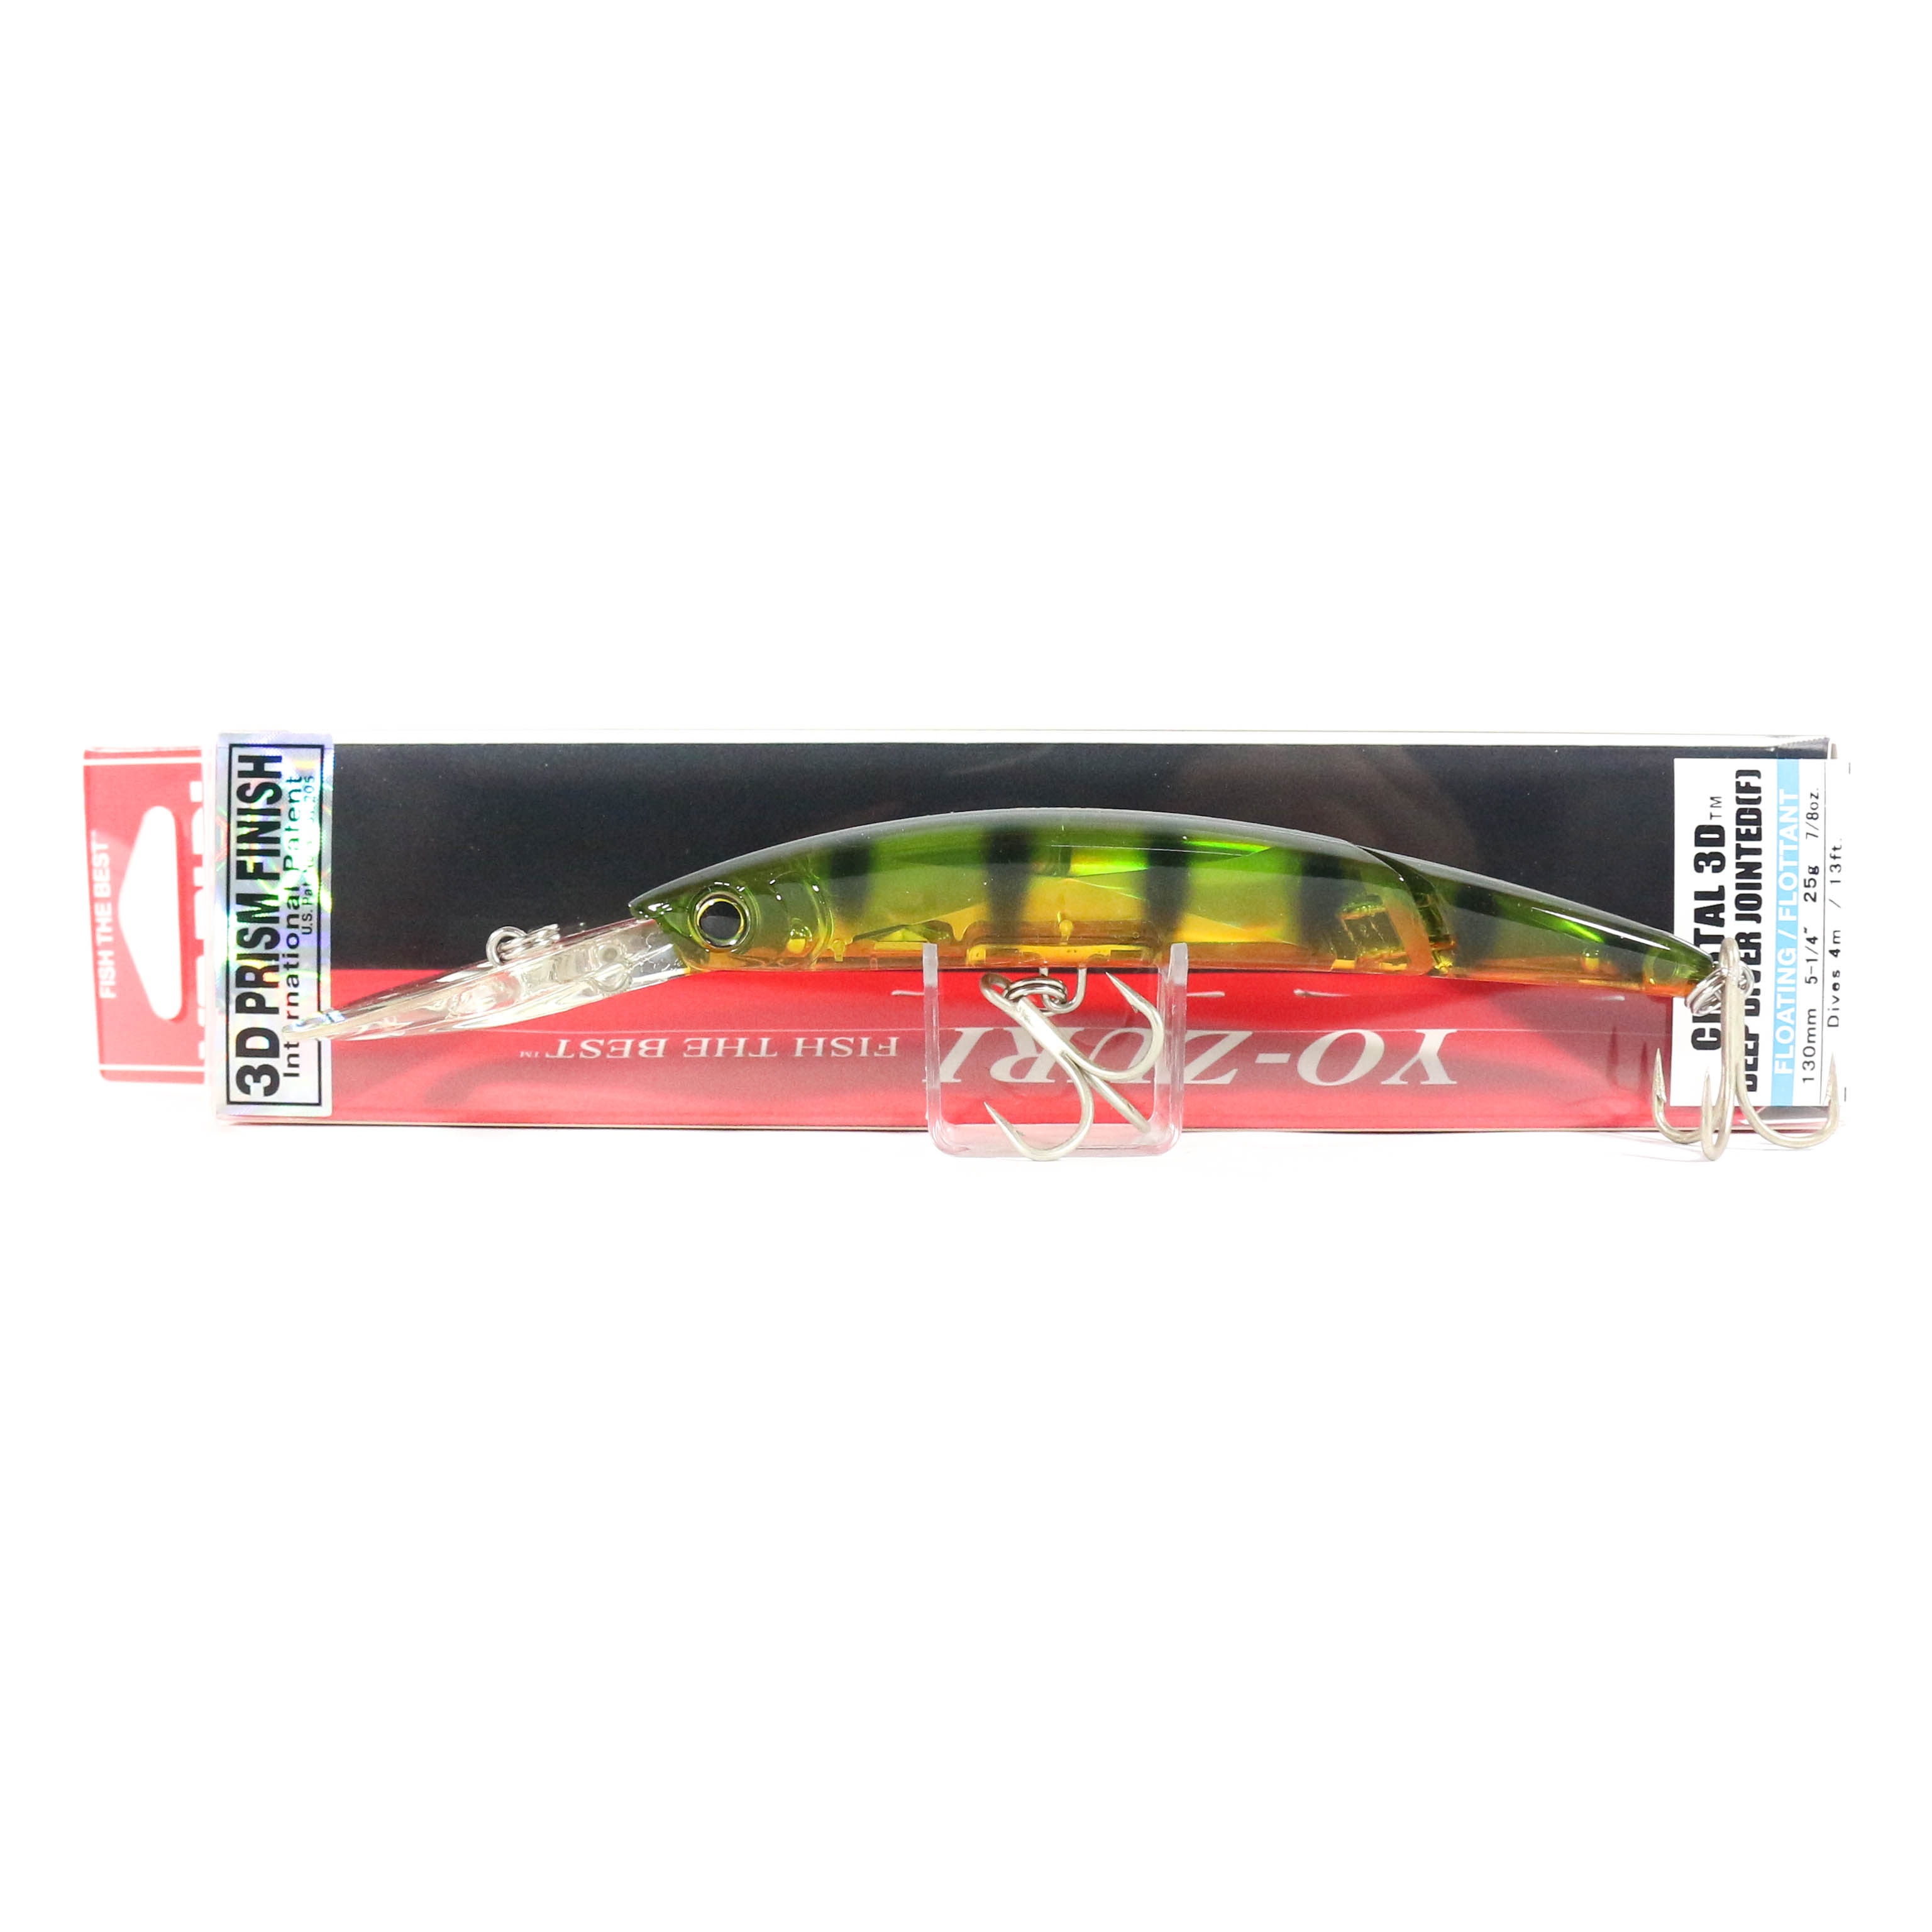 Yo Zuri 3D Crystal Minnow Jointed DD 130 mm Floating Lure F1155-PC (7345)